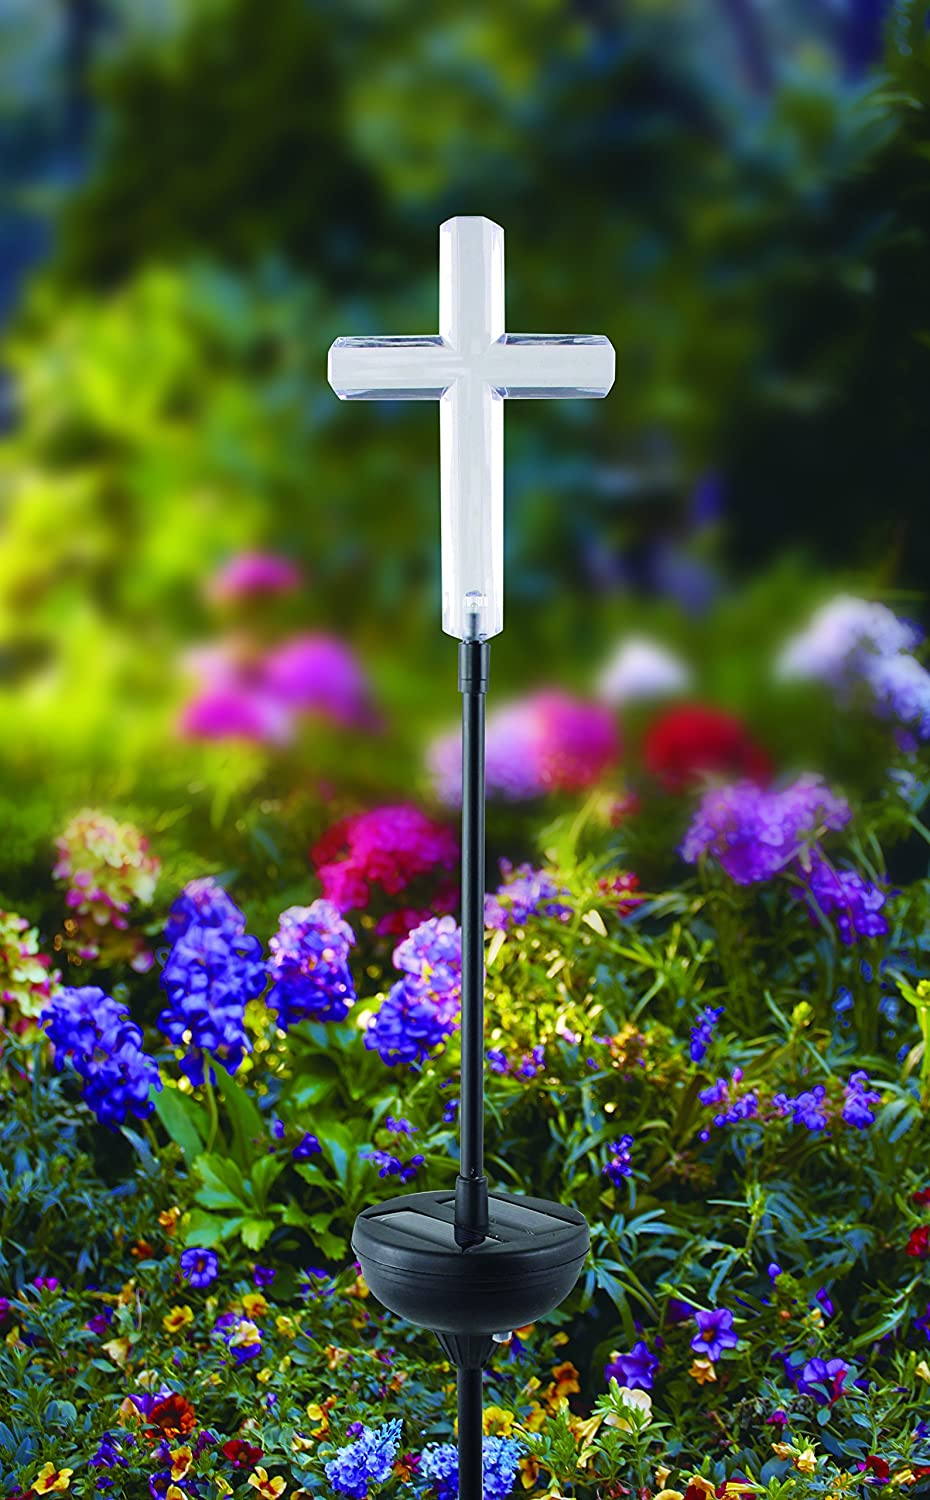 Automatic Light Beautiful Accent for Gardens or Yard Eco Friendly Easy Installation Cross Design Renewed Moonrays 93243 Solar Stake Light Made of Clear Plastic with White LED Light